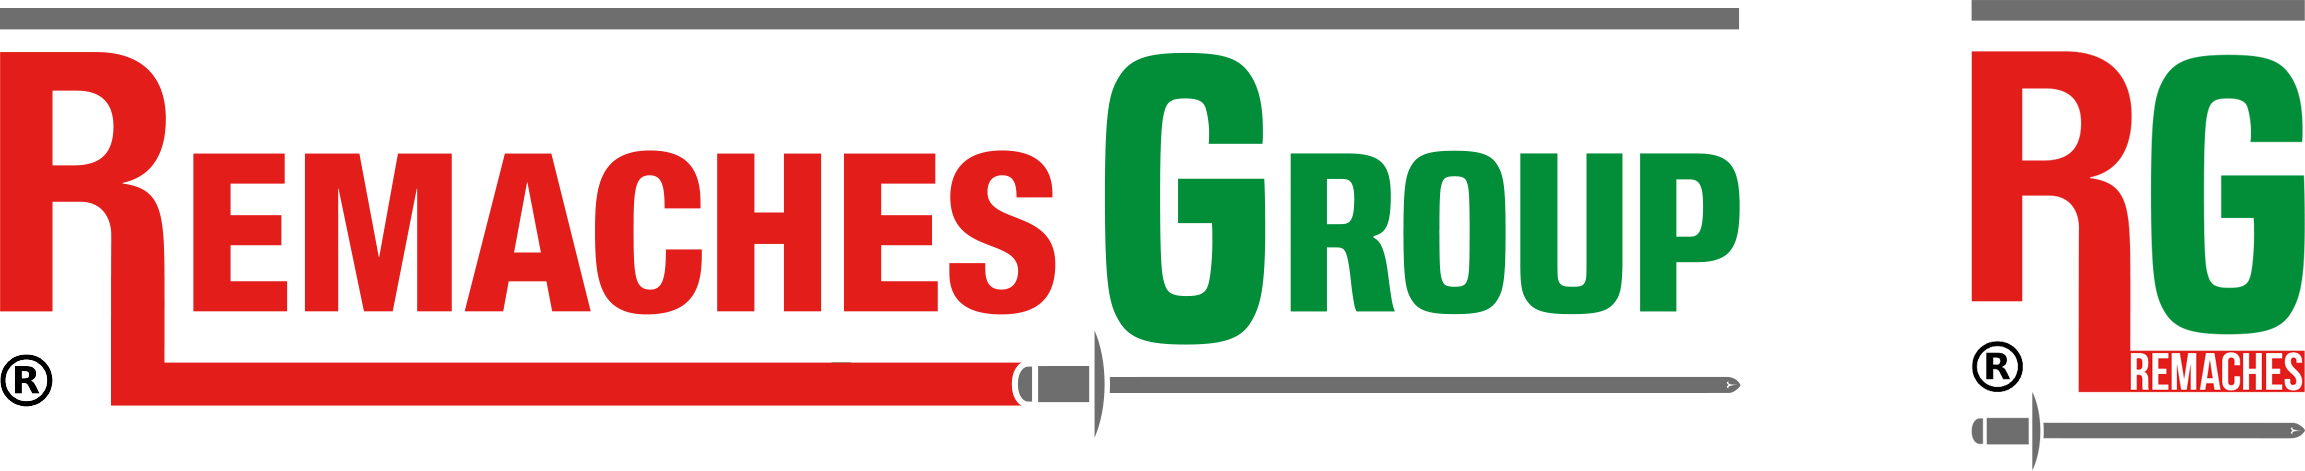 Remaches Group official logo